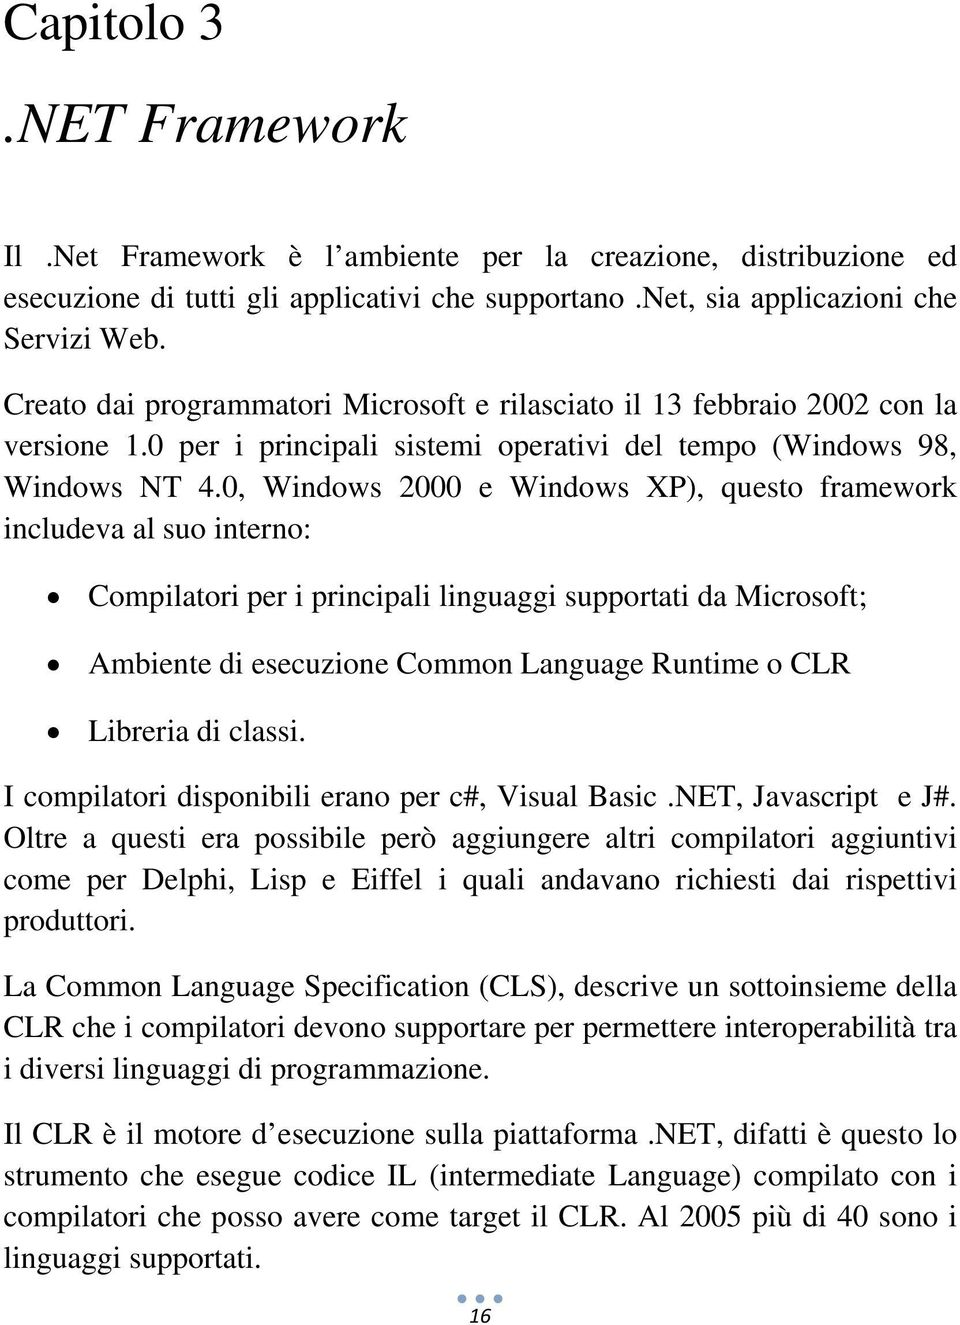 0, Windows 2000 e Windows XP), questo framework includeva al suo interno: Compilatori per i principali linguaggi supportati da Microsoft; Ambiente di esecuzione Common Language Runtime o CLR Libreria